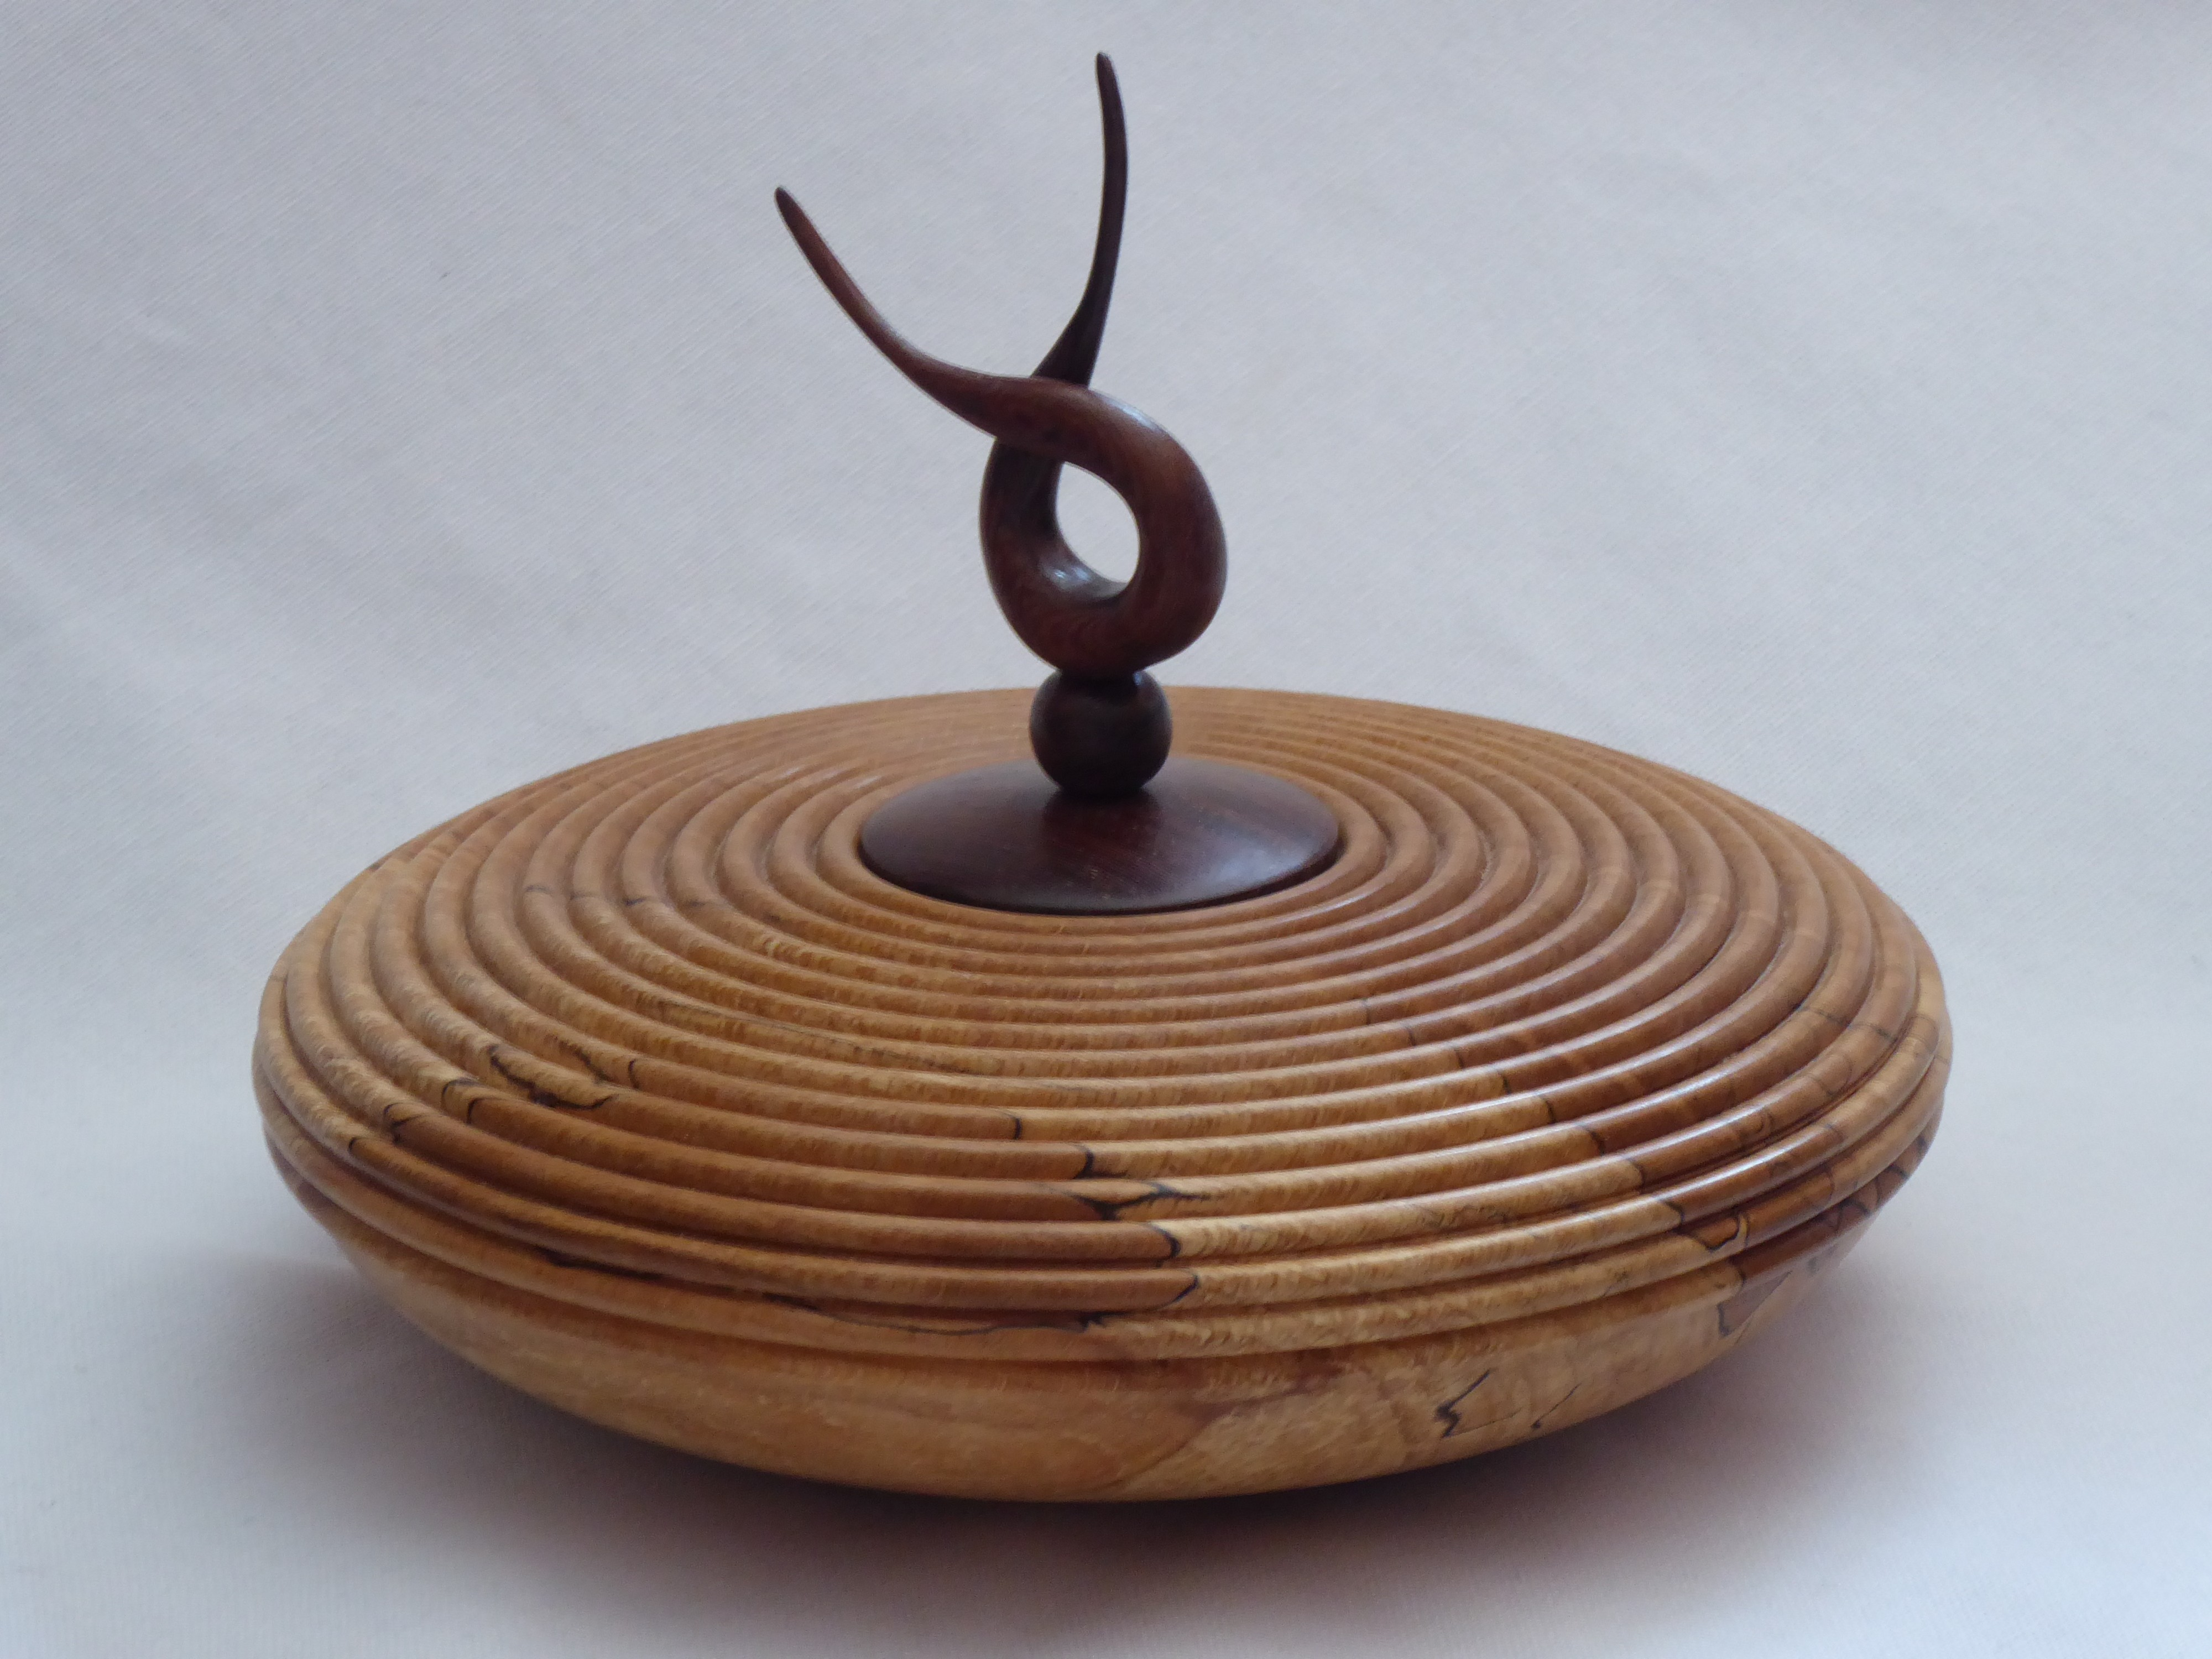 Beaded Hollow Form with Lid and Finial